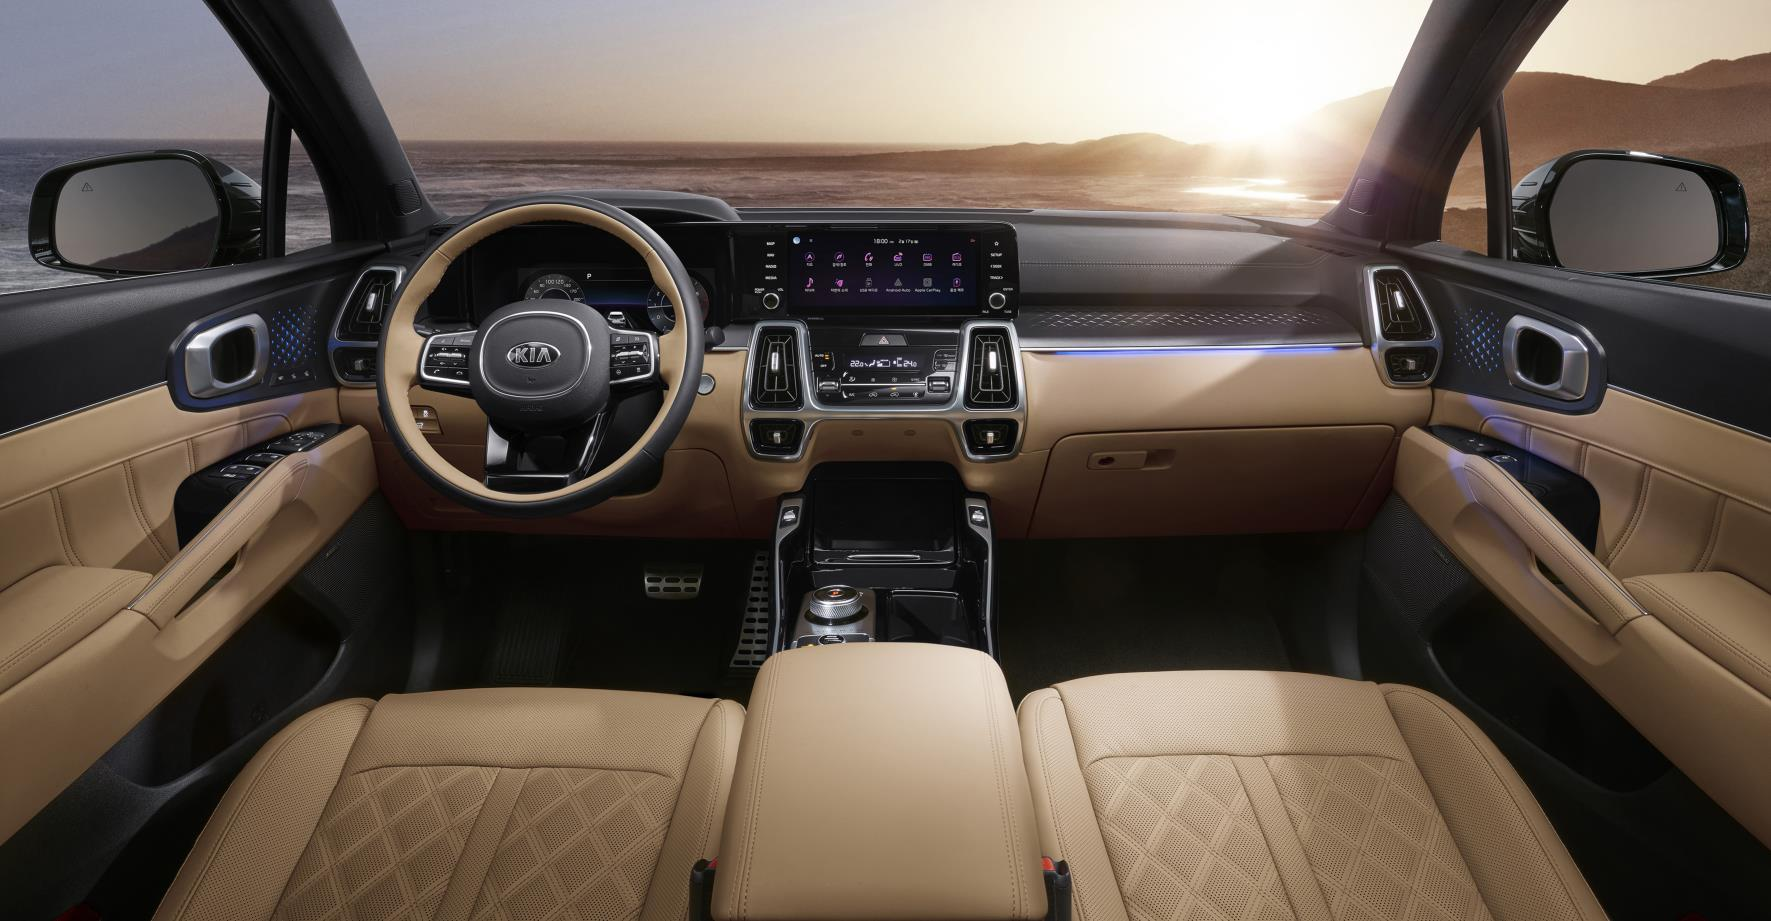 2021 kia sorento officially revealed  inside and out